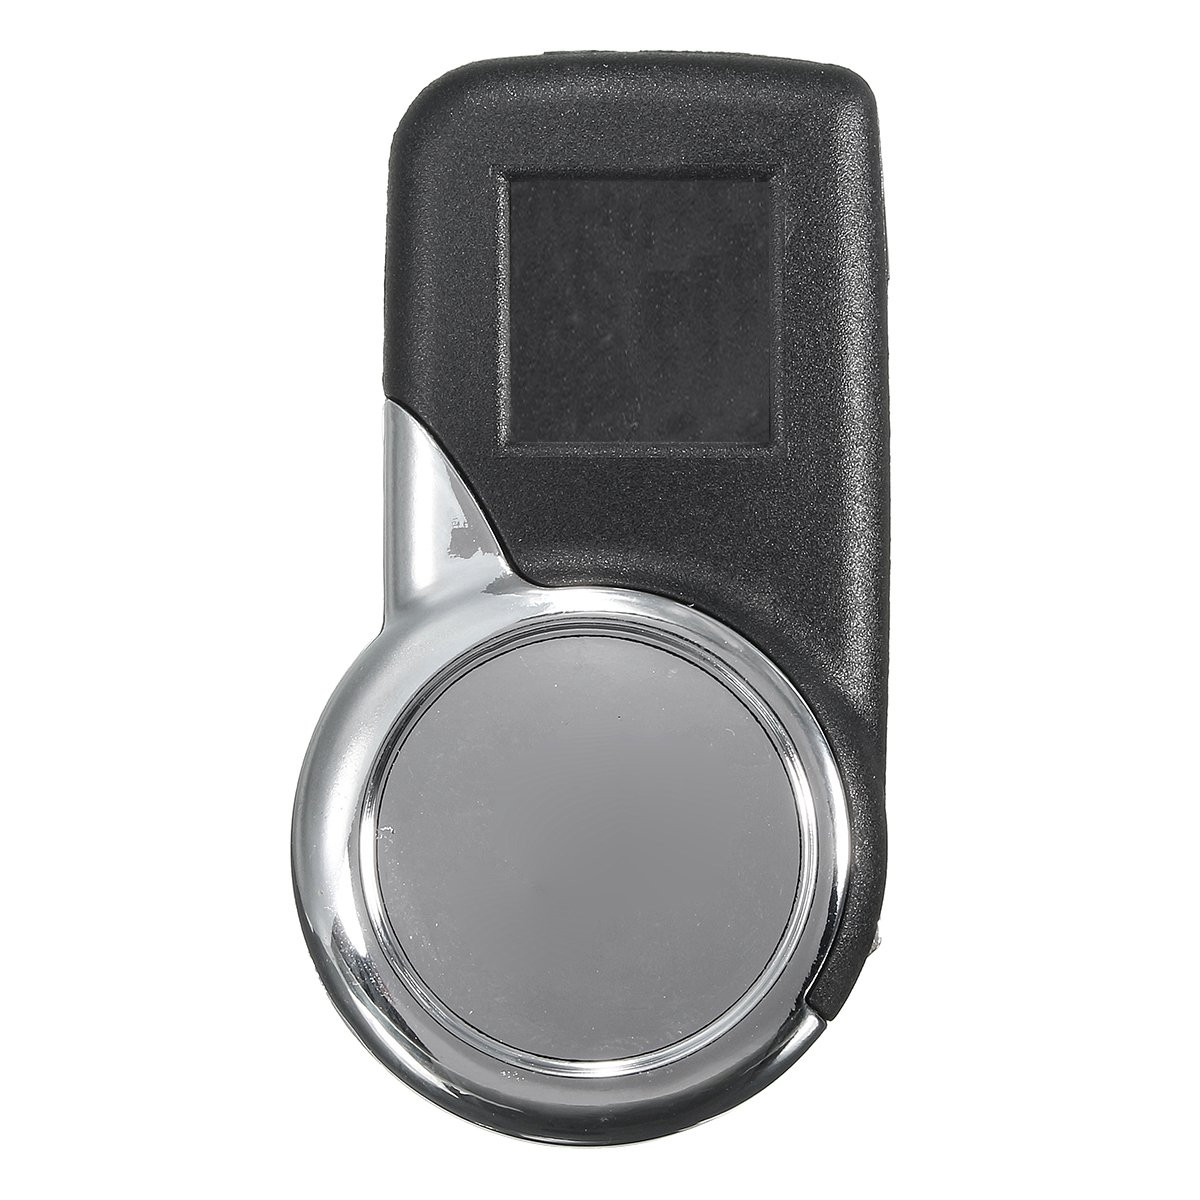 2 Buttons Plating Remote Key Fob Case Shell w/ Uncut Blade Flip for Citroen DS3